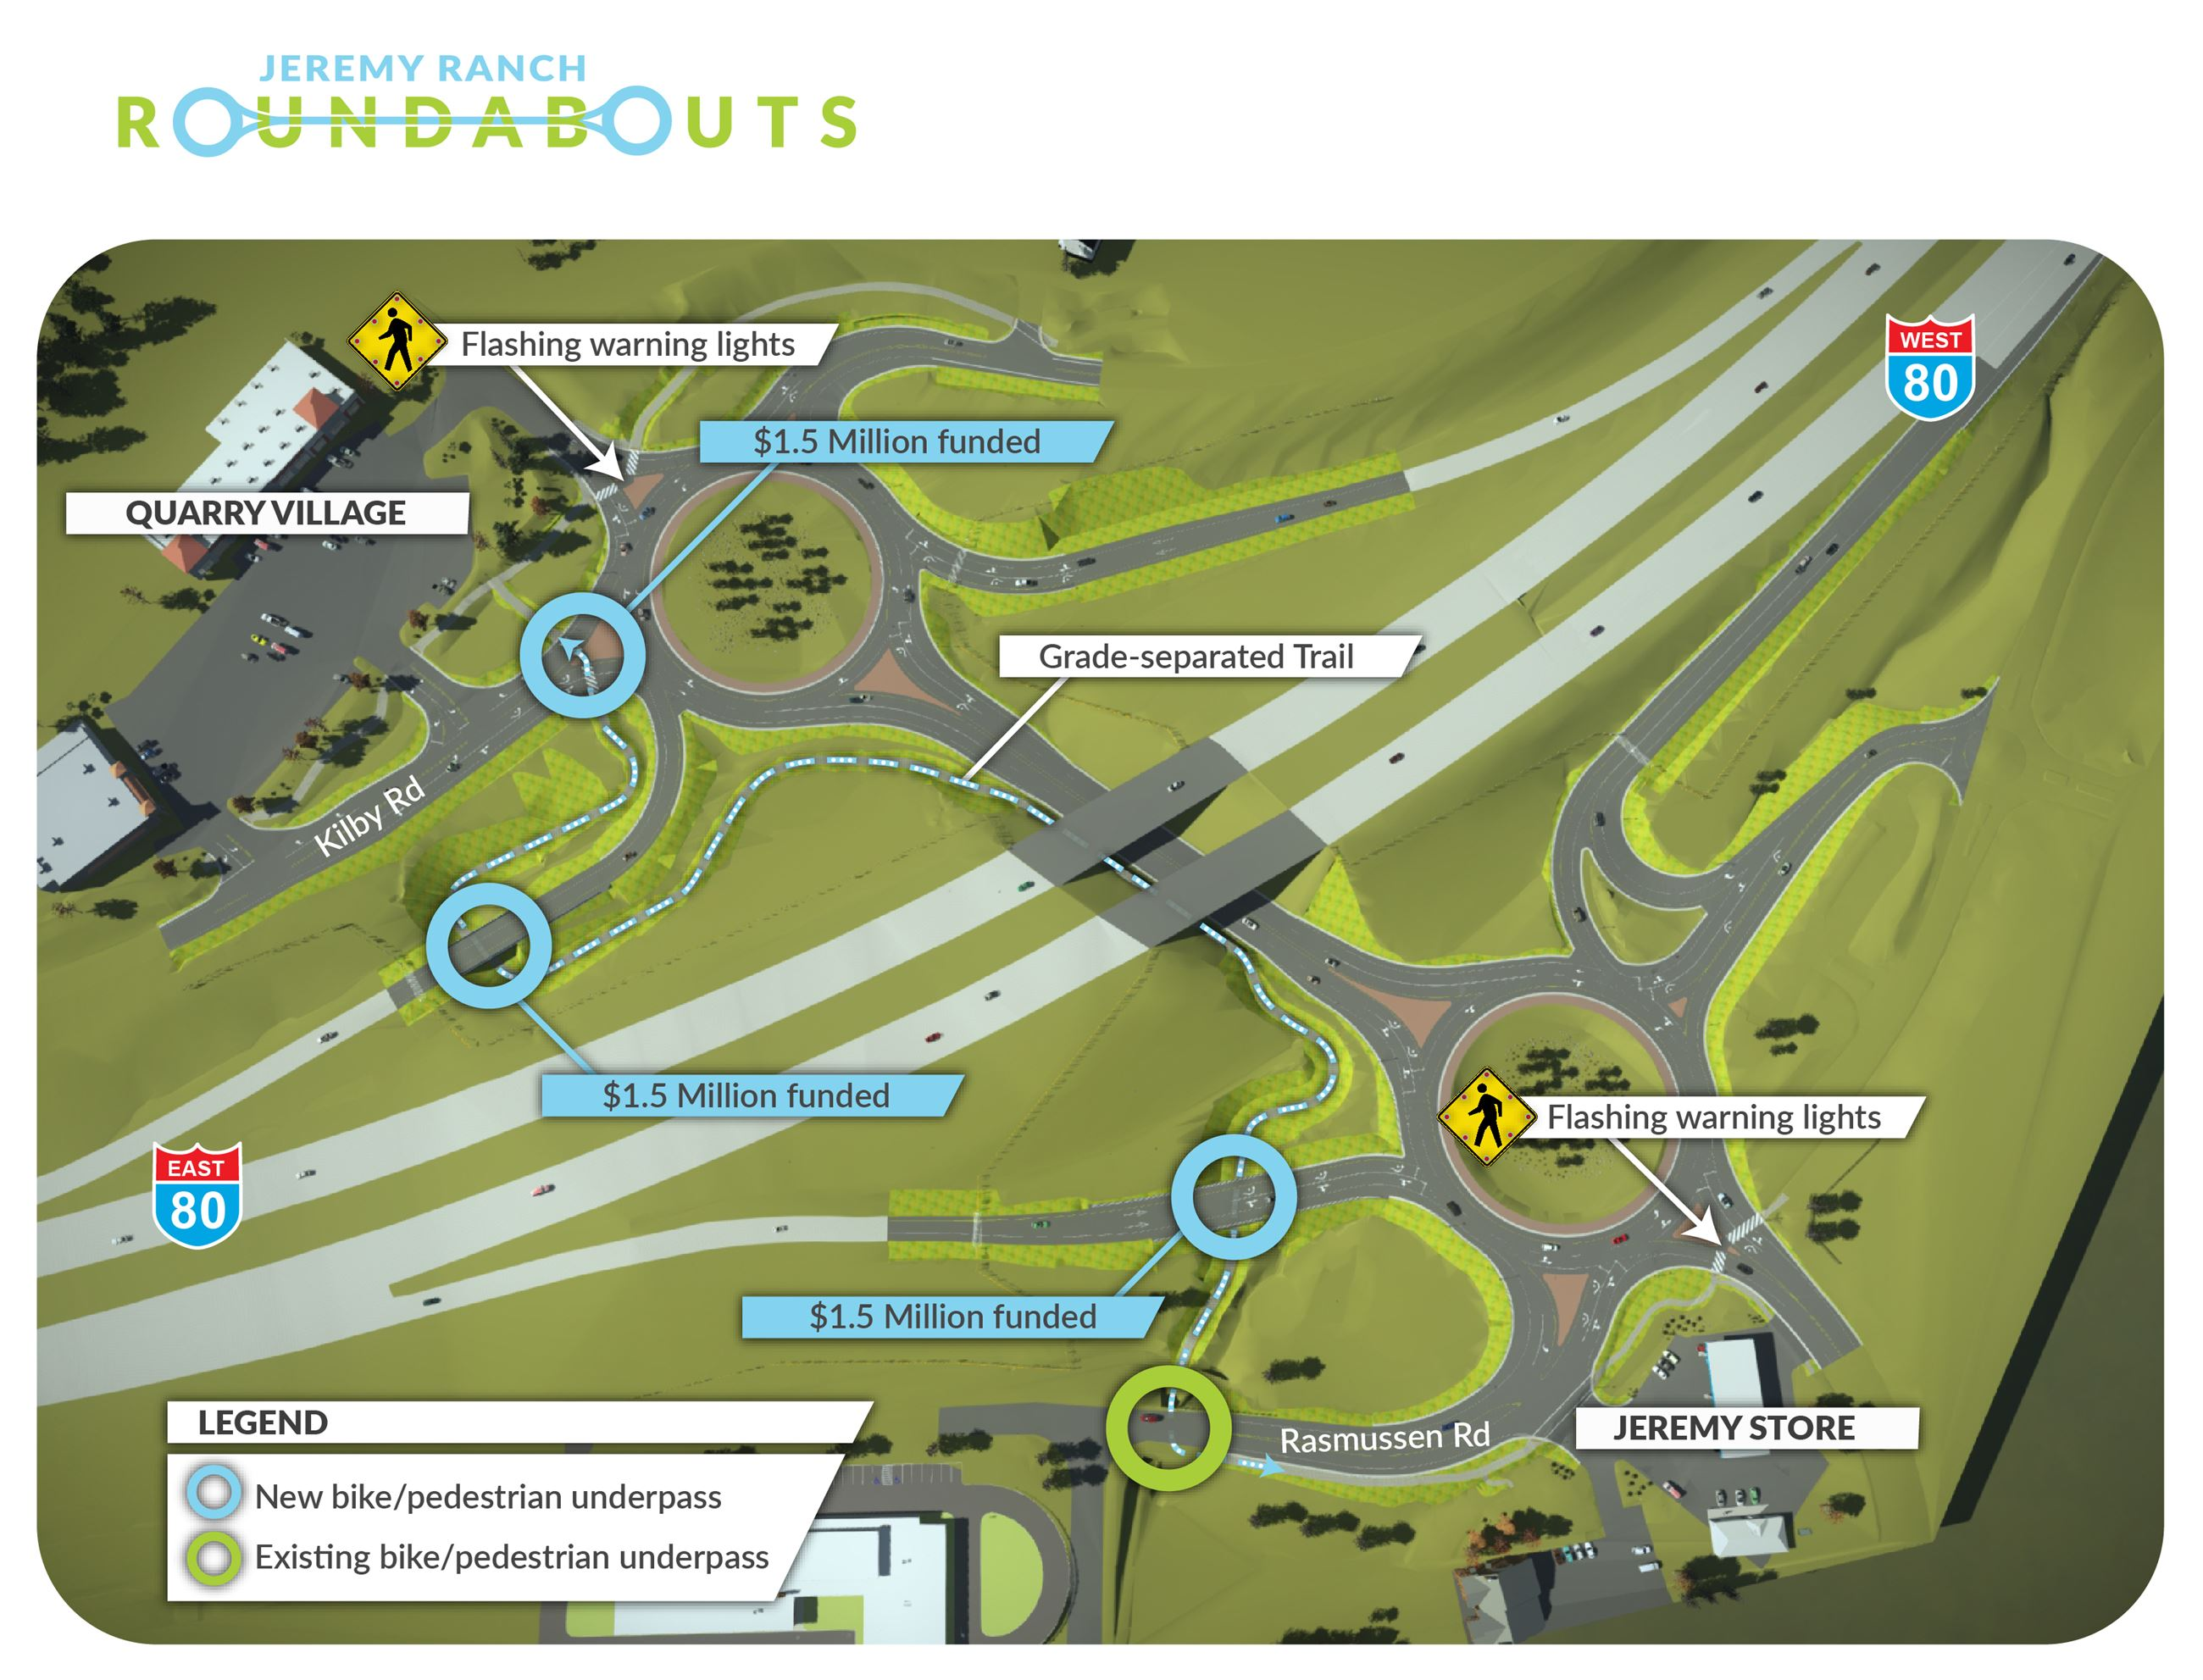 Jeremy Ranch Roundabouts Trails Map 3.21.19